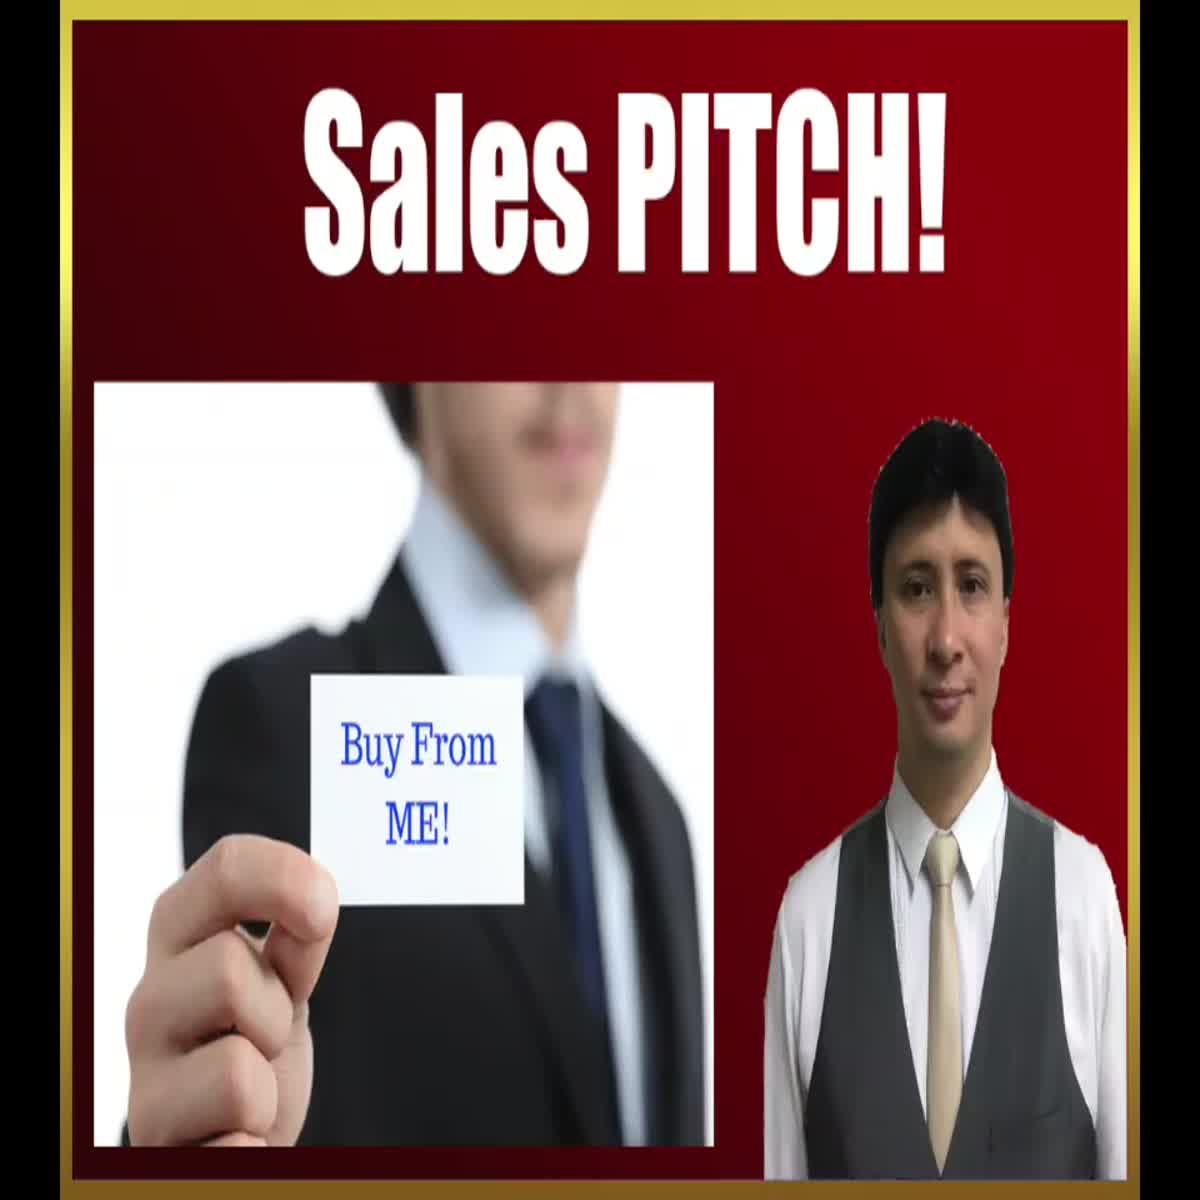 I will create a Great Sales Pitch for your product or service